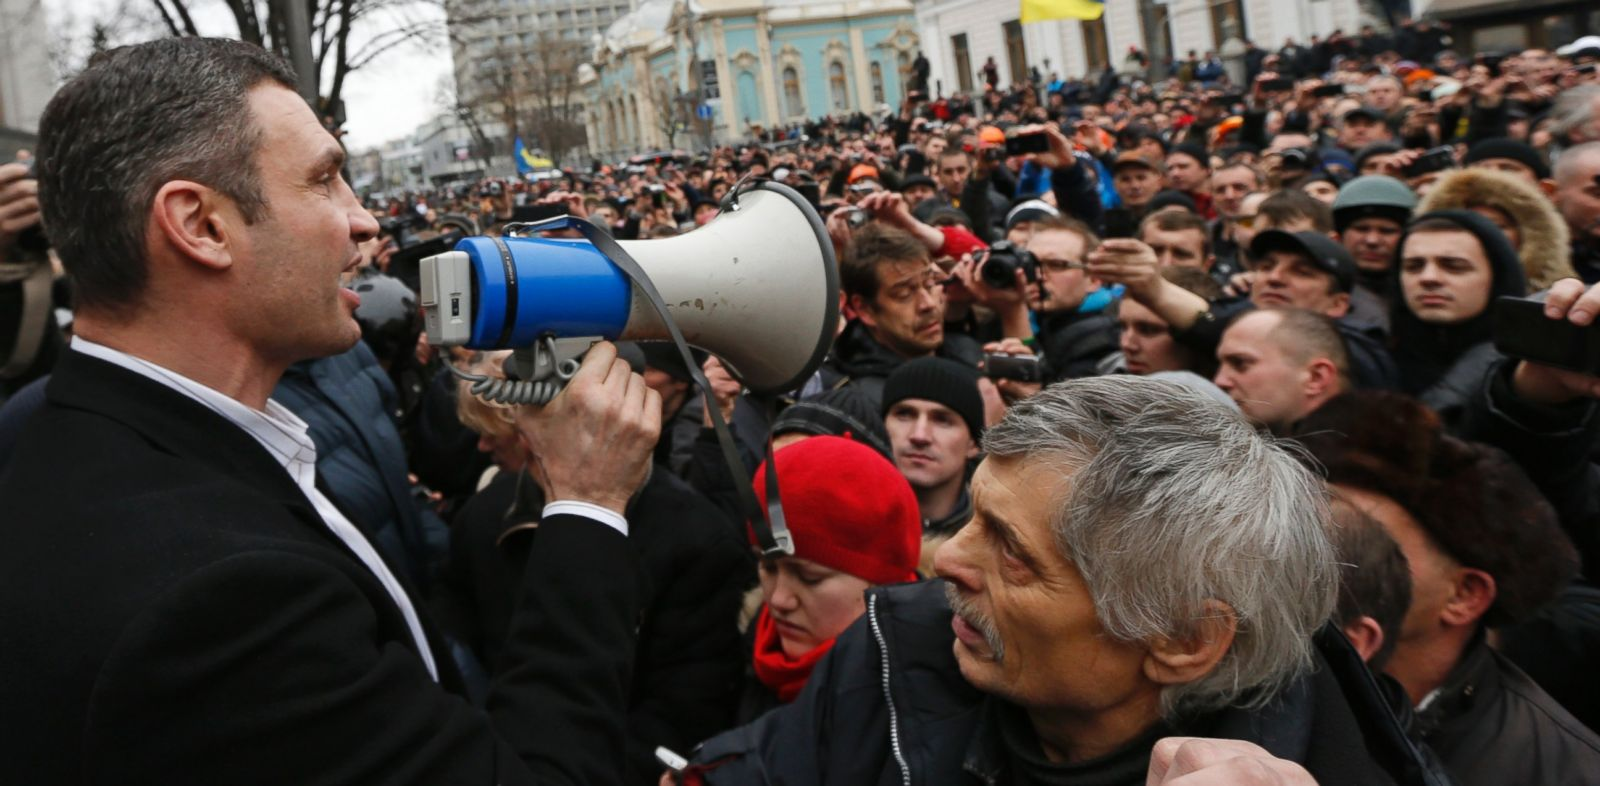 PHOTO: Ukrainian opposition leader and head of the UDAR (Punch) party Vitaly Klitschko (L) addresses anti-government protesters outside the Ukrainian Parliament building in Kiev, Feb. 22, 2014.